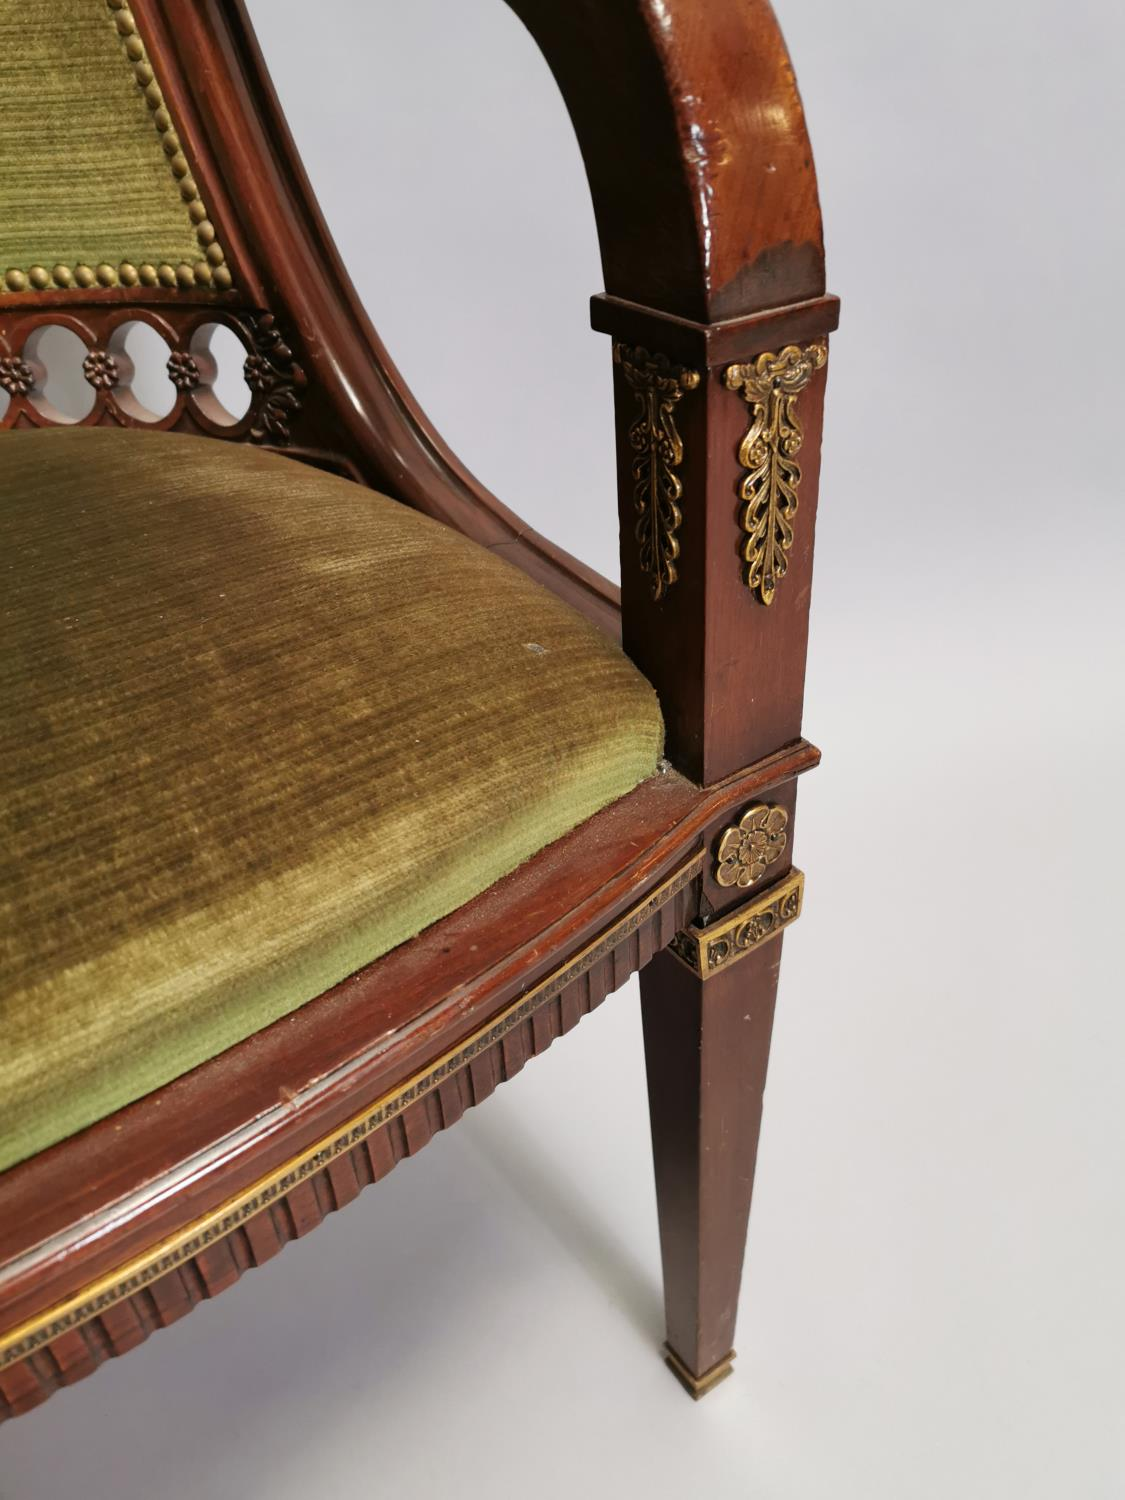 Upholstered mahogany desk chair - Image 3 of 8